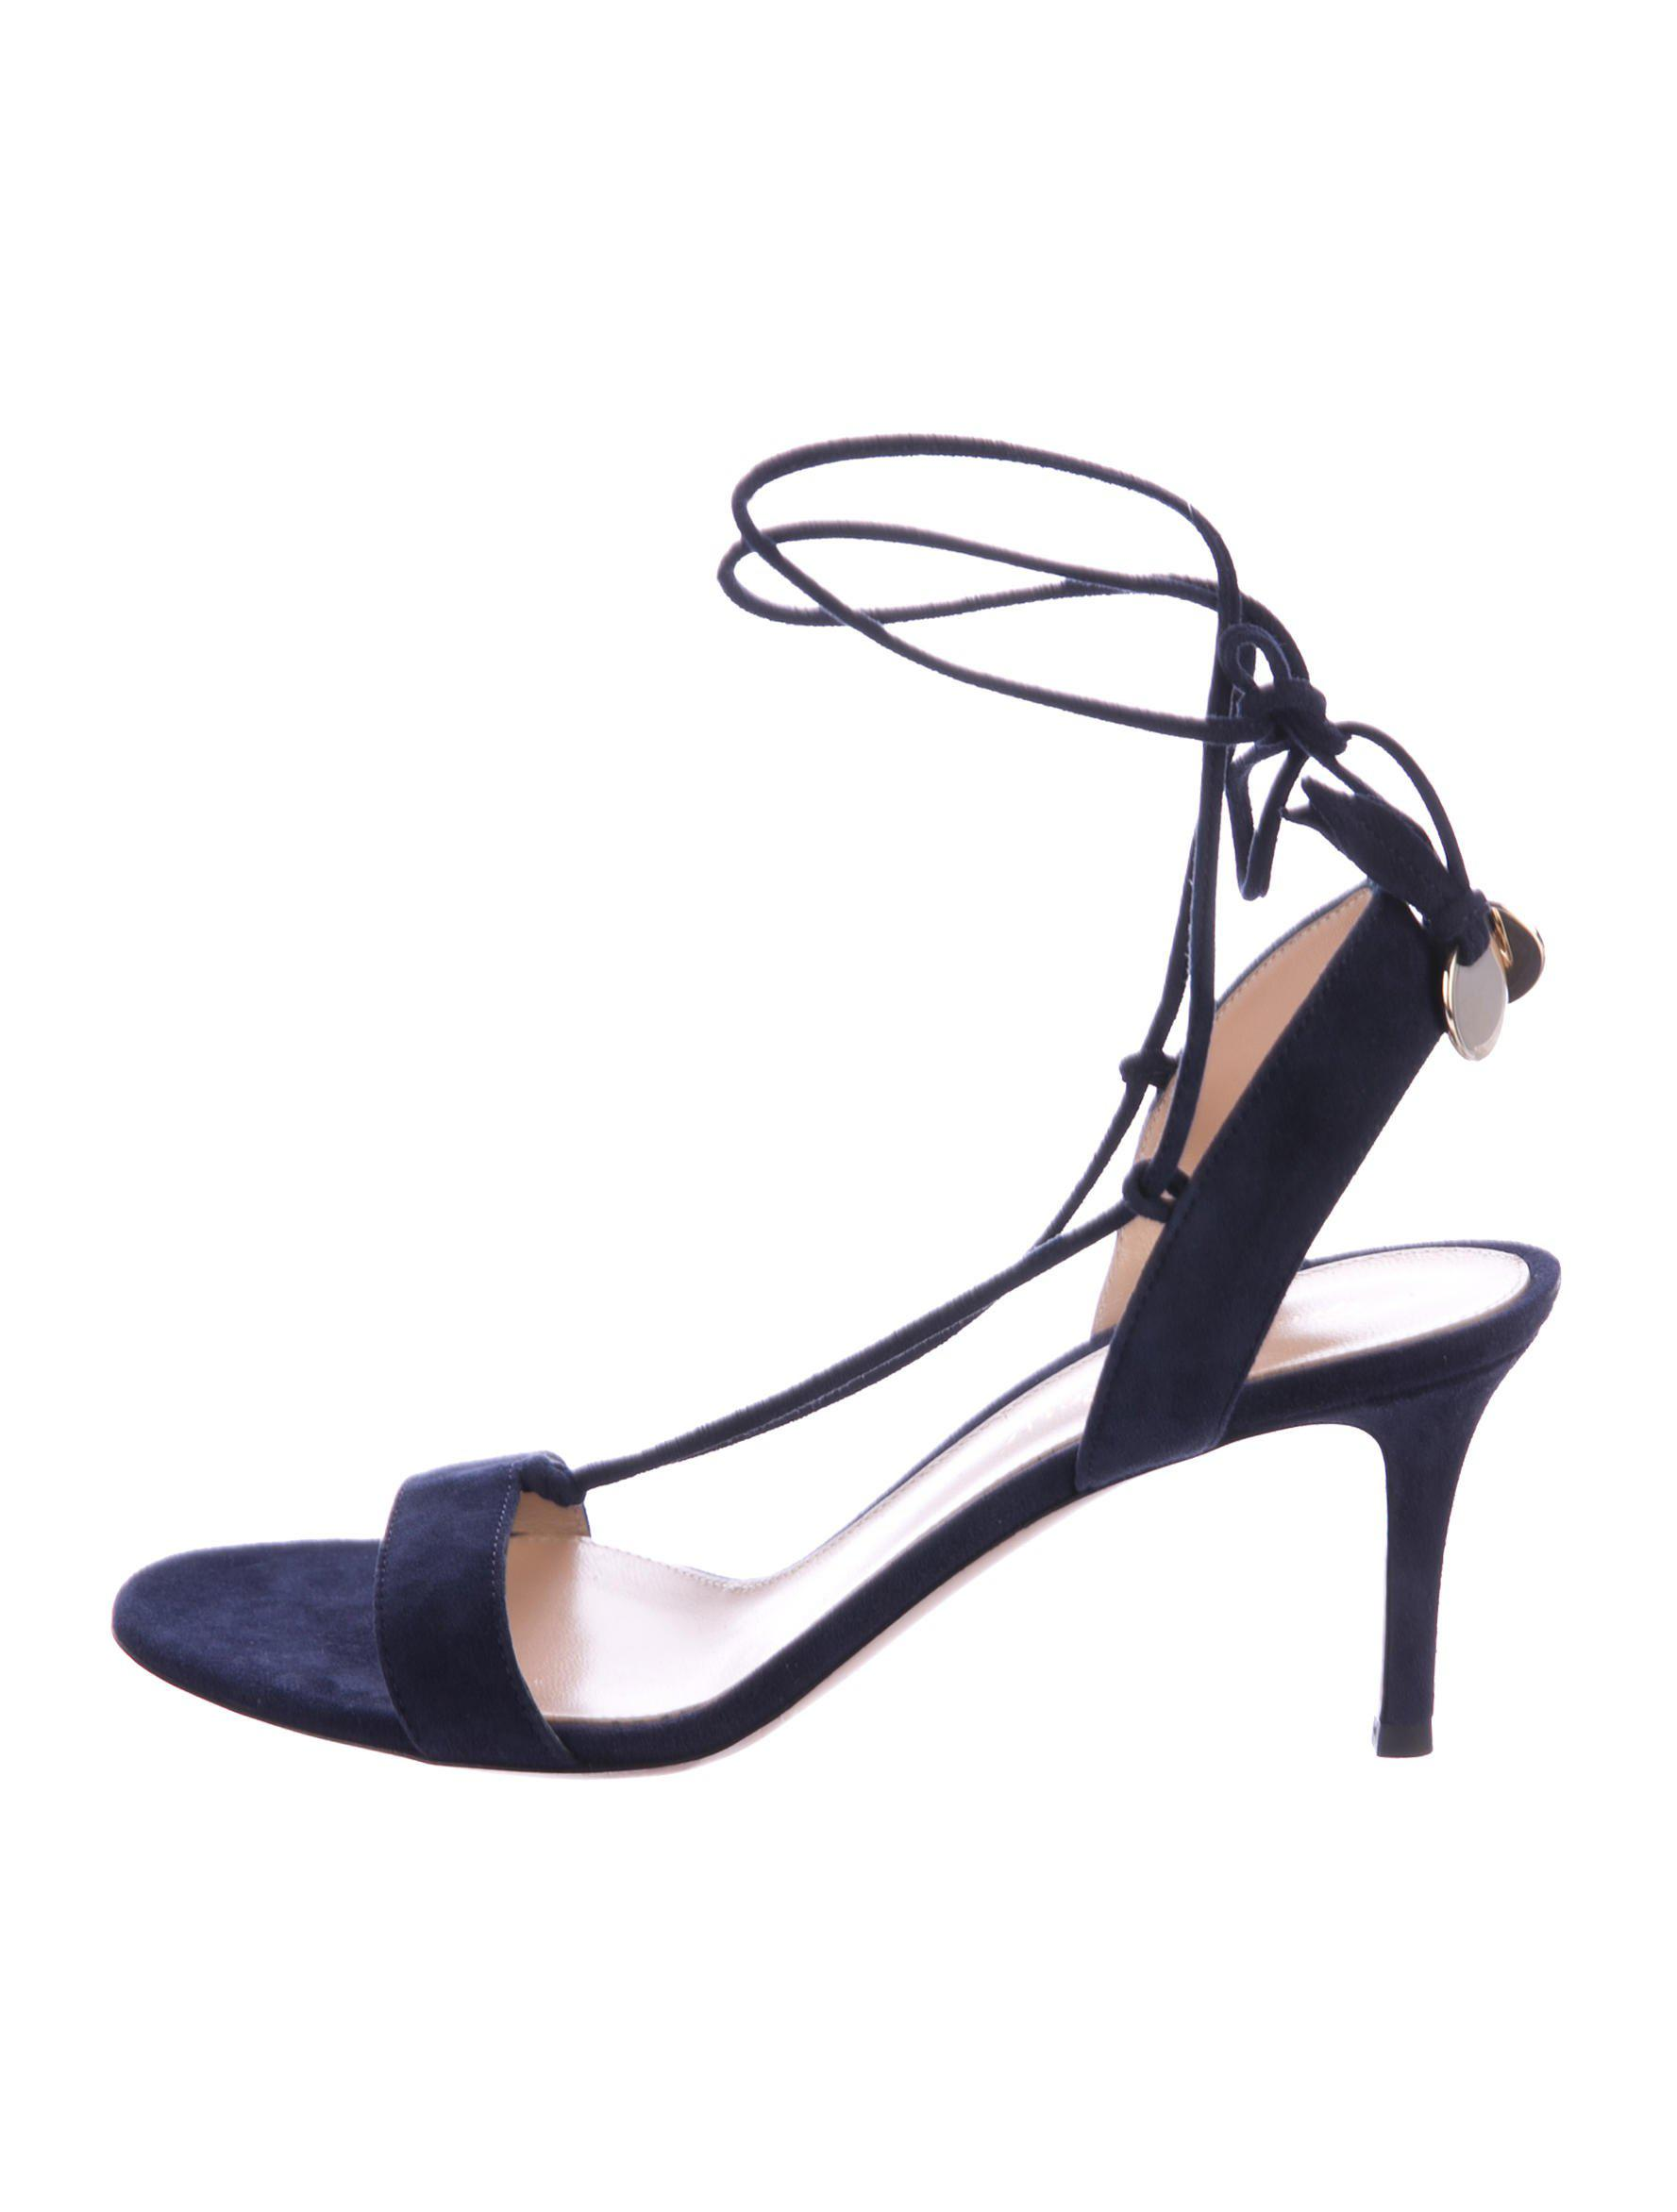 fc6220fbffa5 Lyst - Gianvito Rossi Suede Ankle-wrap Sandals Navy in Metallic